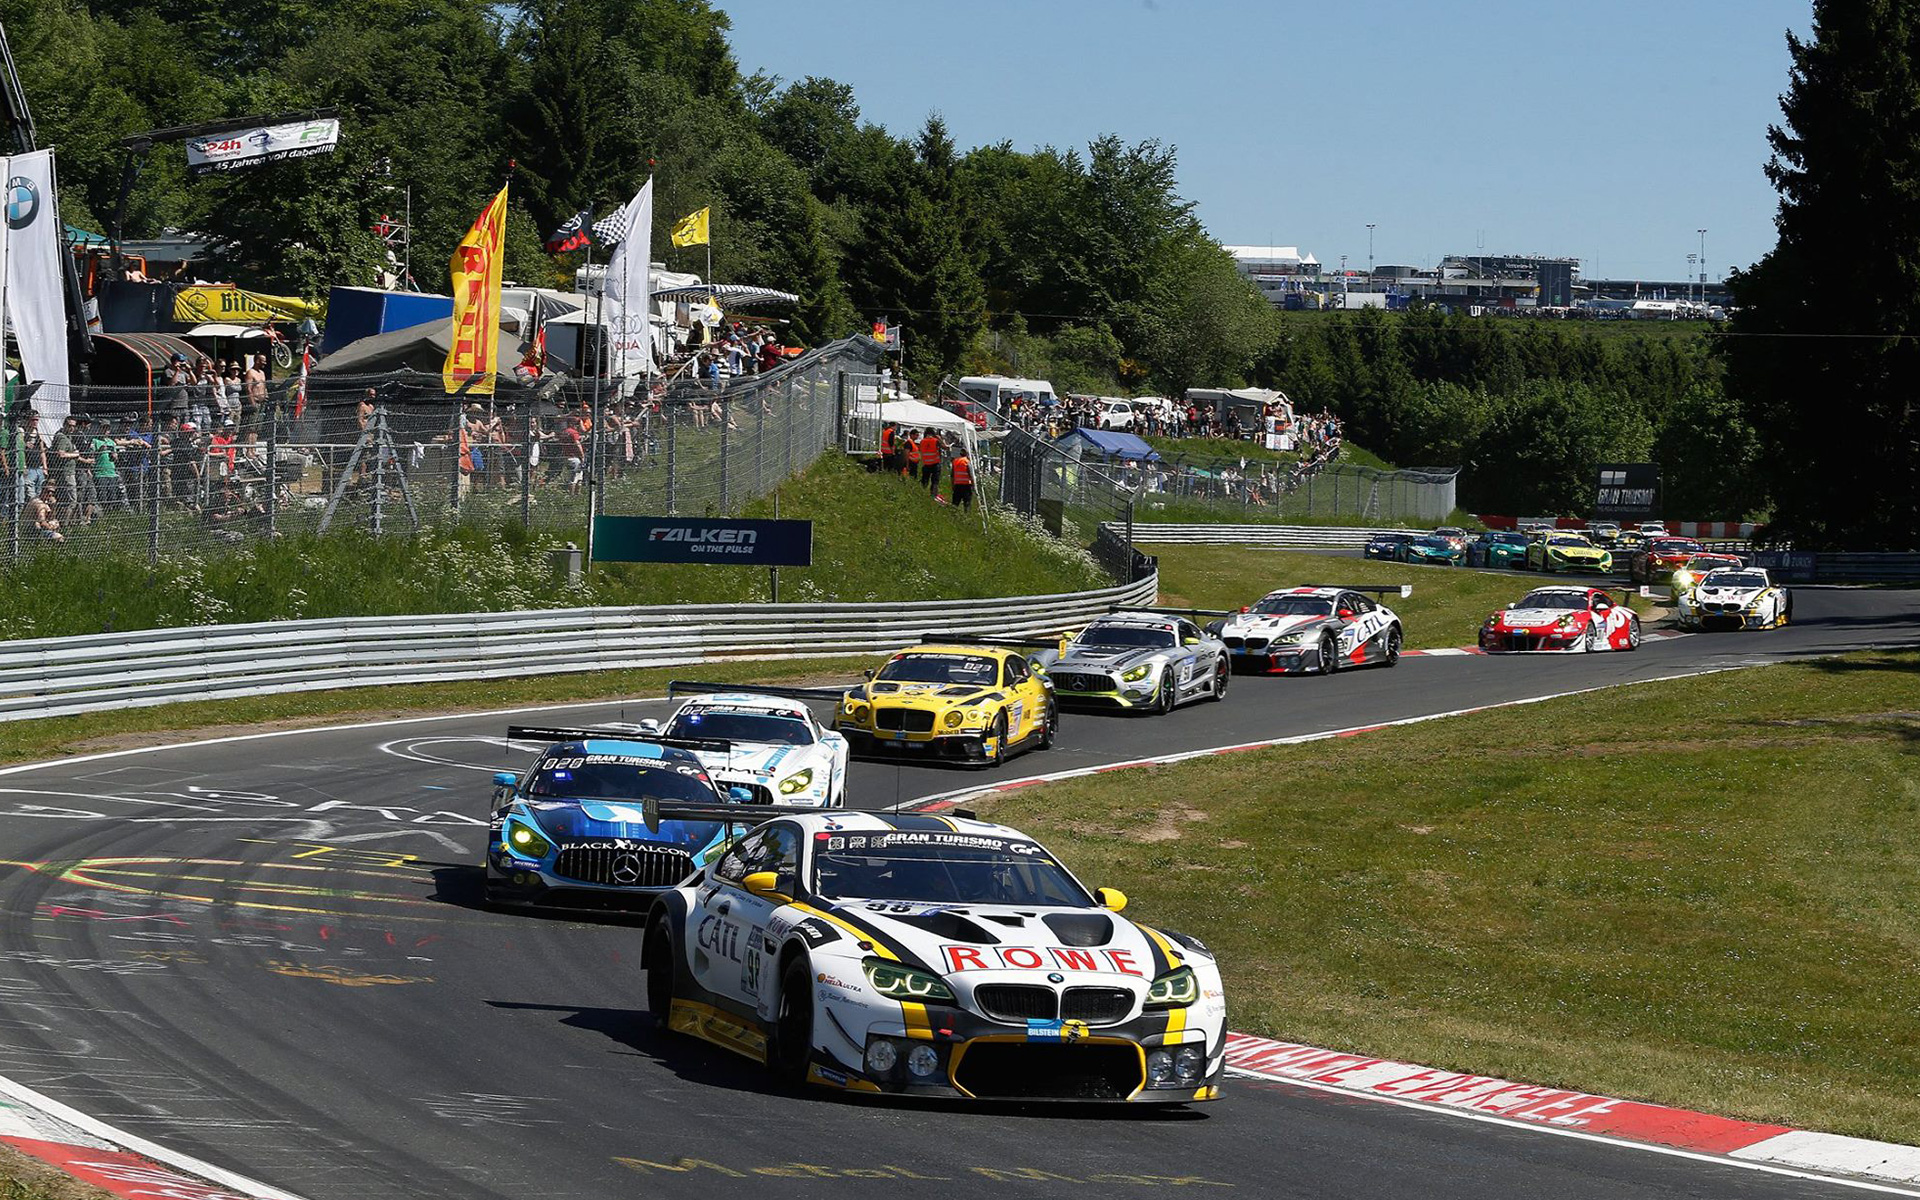 24h nurburgring 2017 pictures to pin on pinterest thepinsta. Black Bedroom Furniture Sets. Home Design Ideas